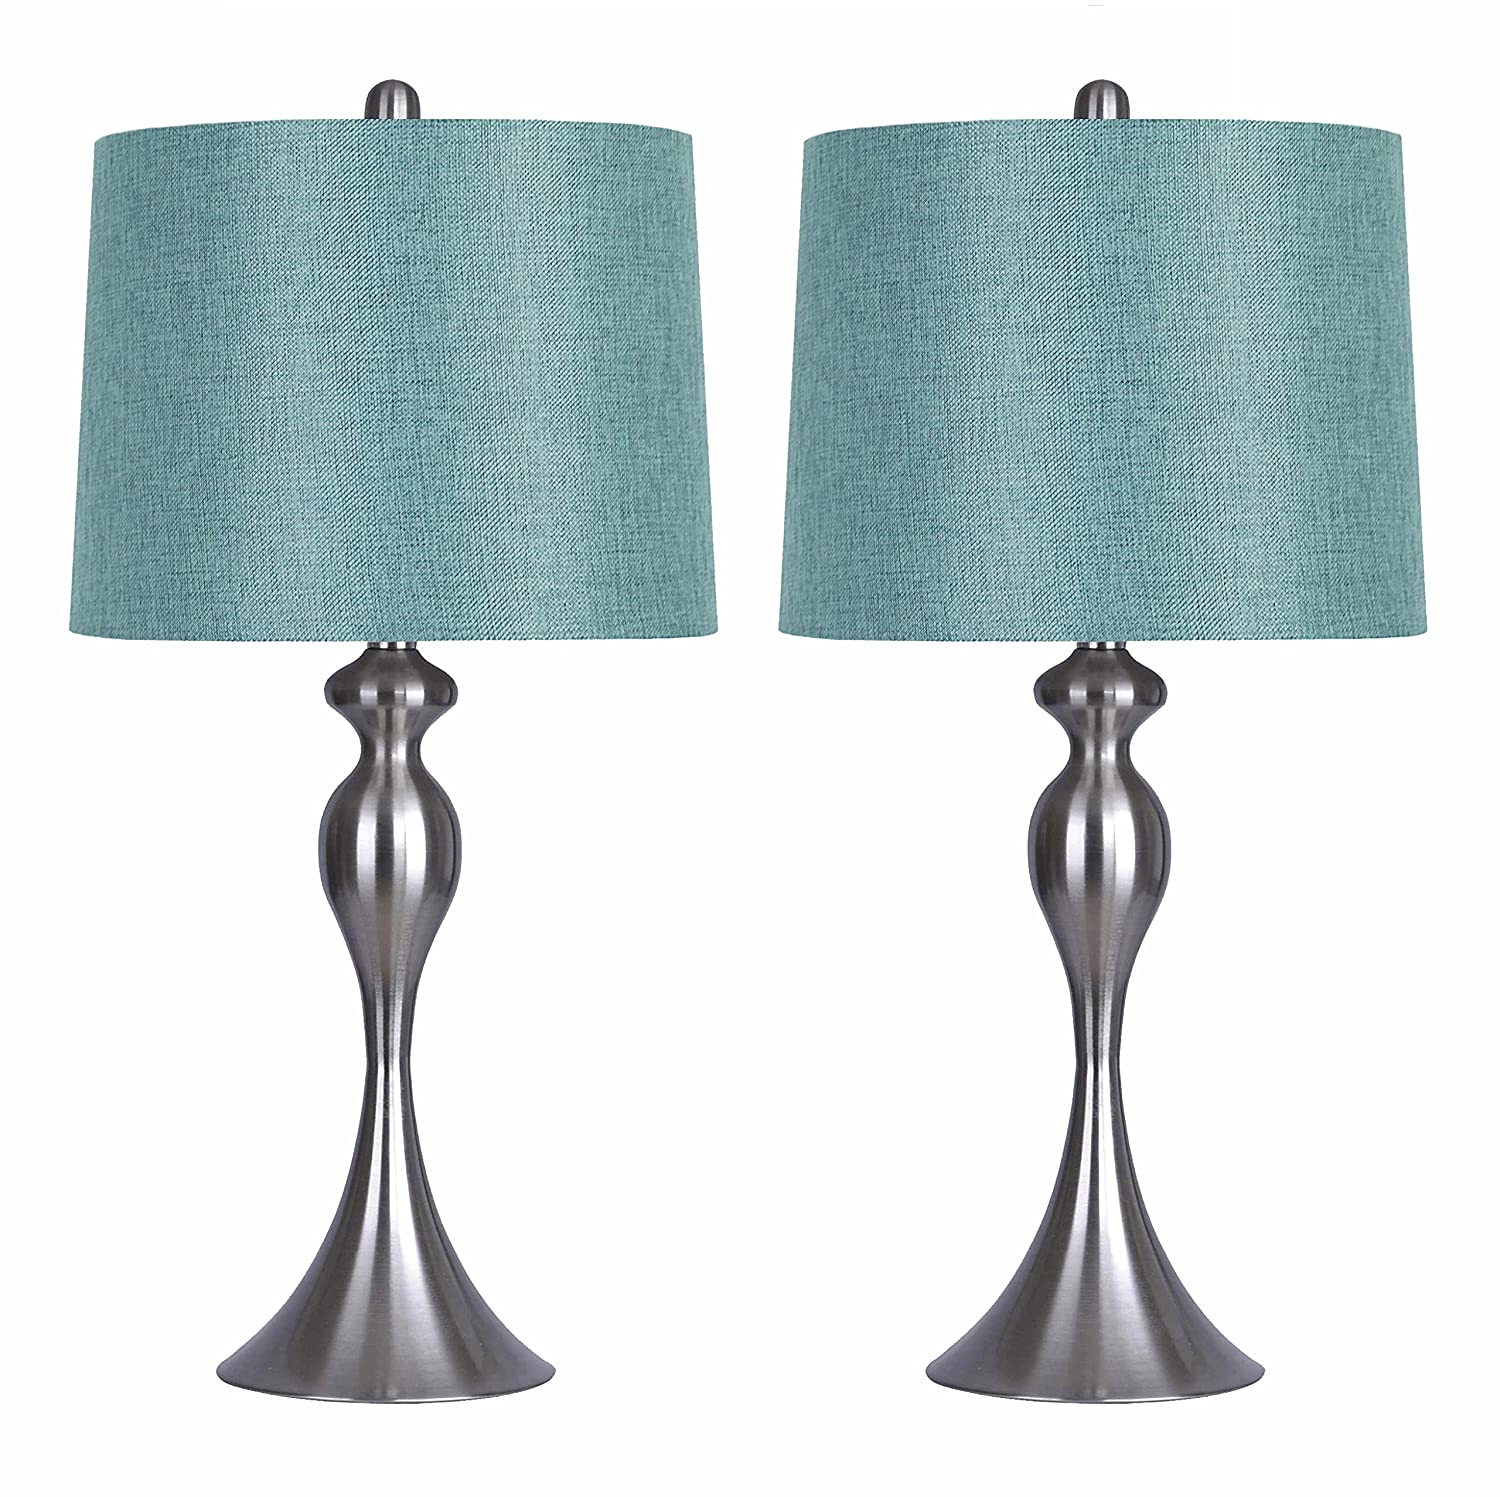 Grandview Gallery Table Lamps with Turquoise Shade, Set of 2 - Linen ...